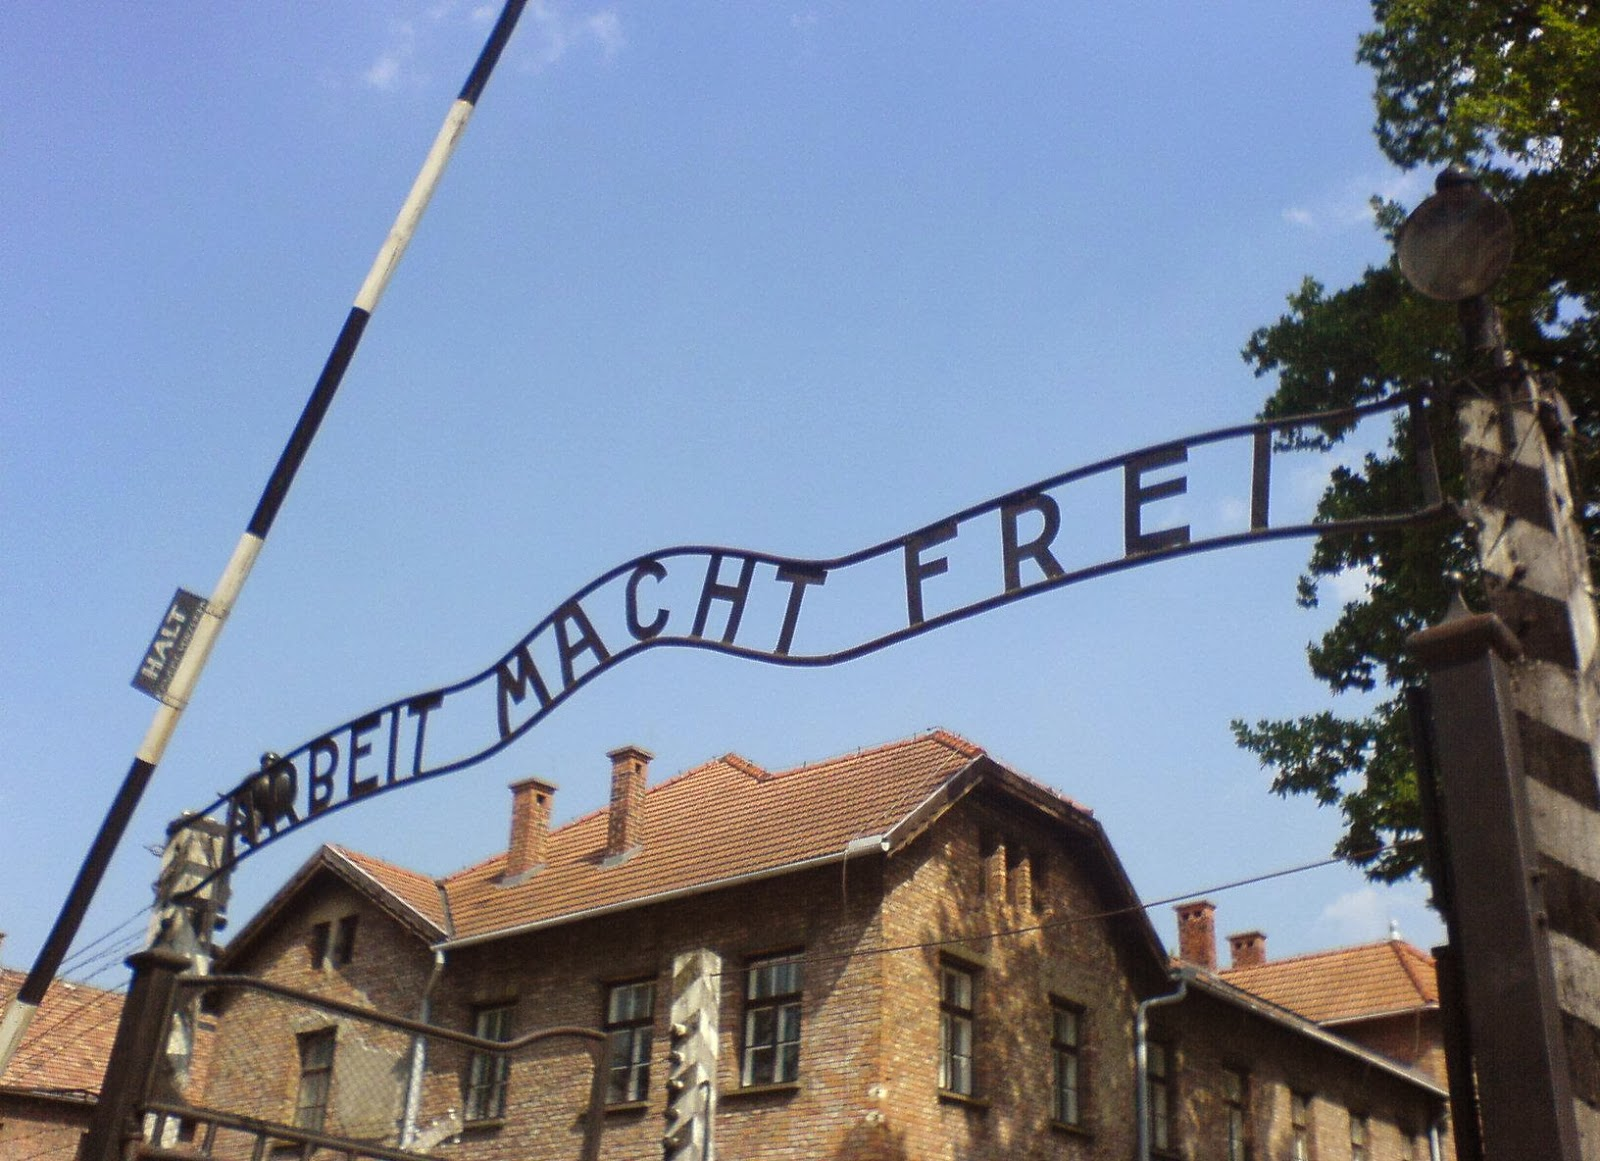 abwehr 1109 ier executioner pro lifer auschwitz the entry gate to auschwitz concentration camp taken in 2006 the infamous arbeit macht frei message is visible